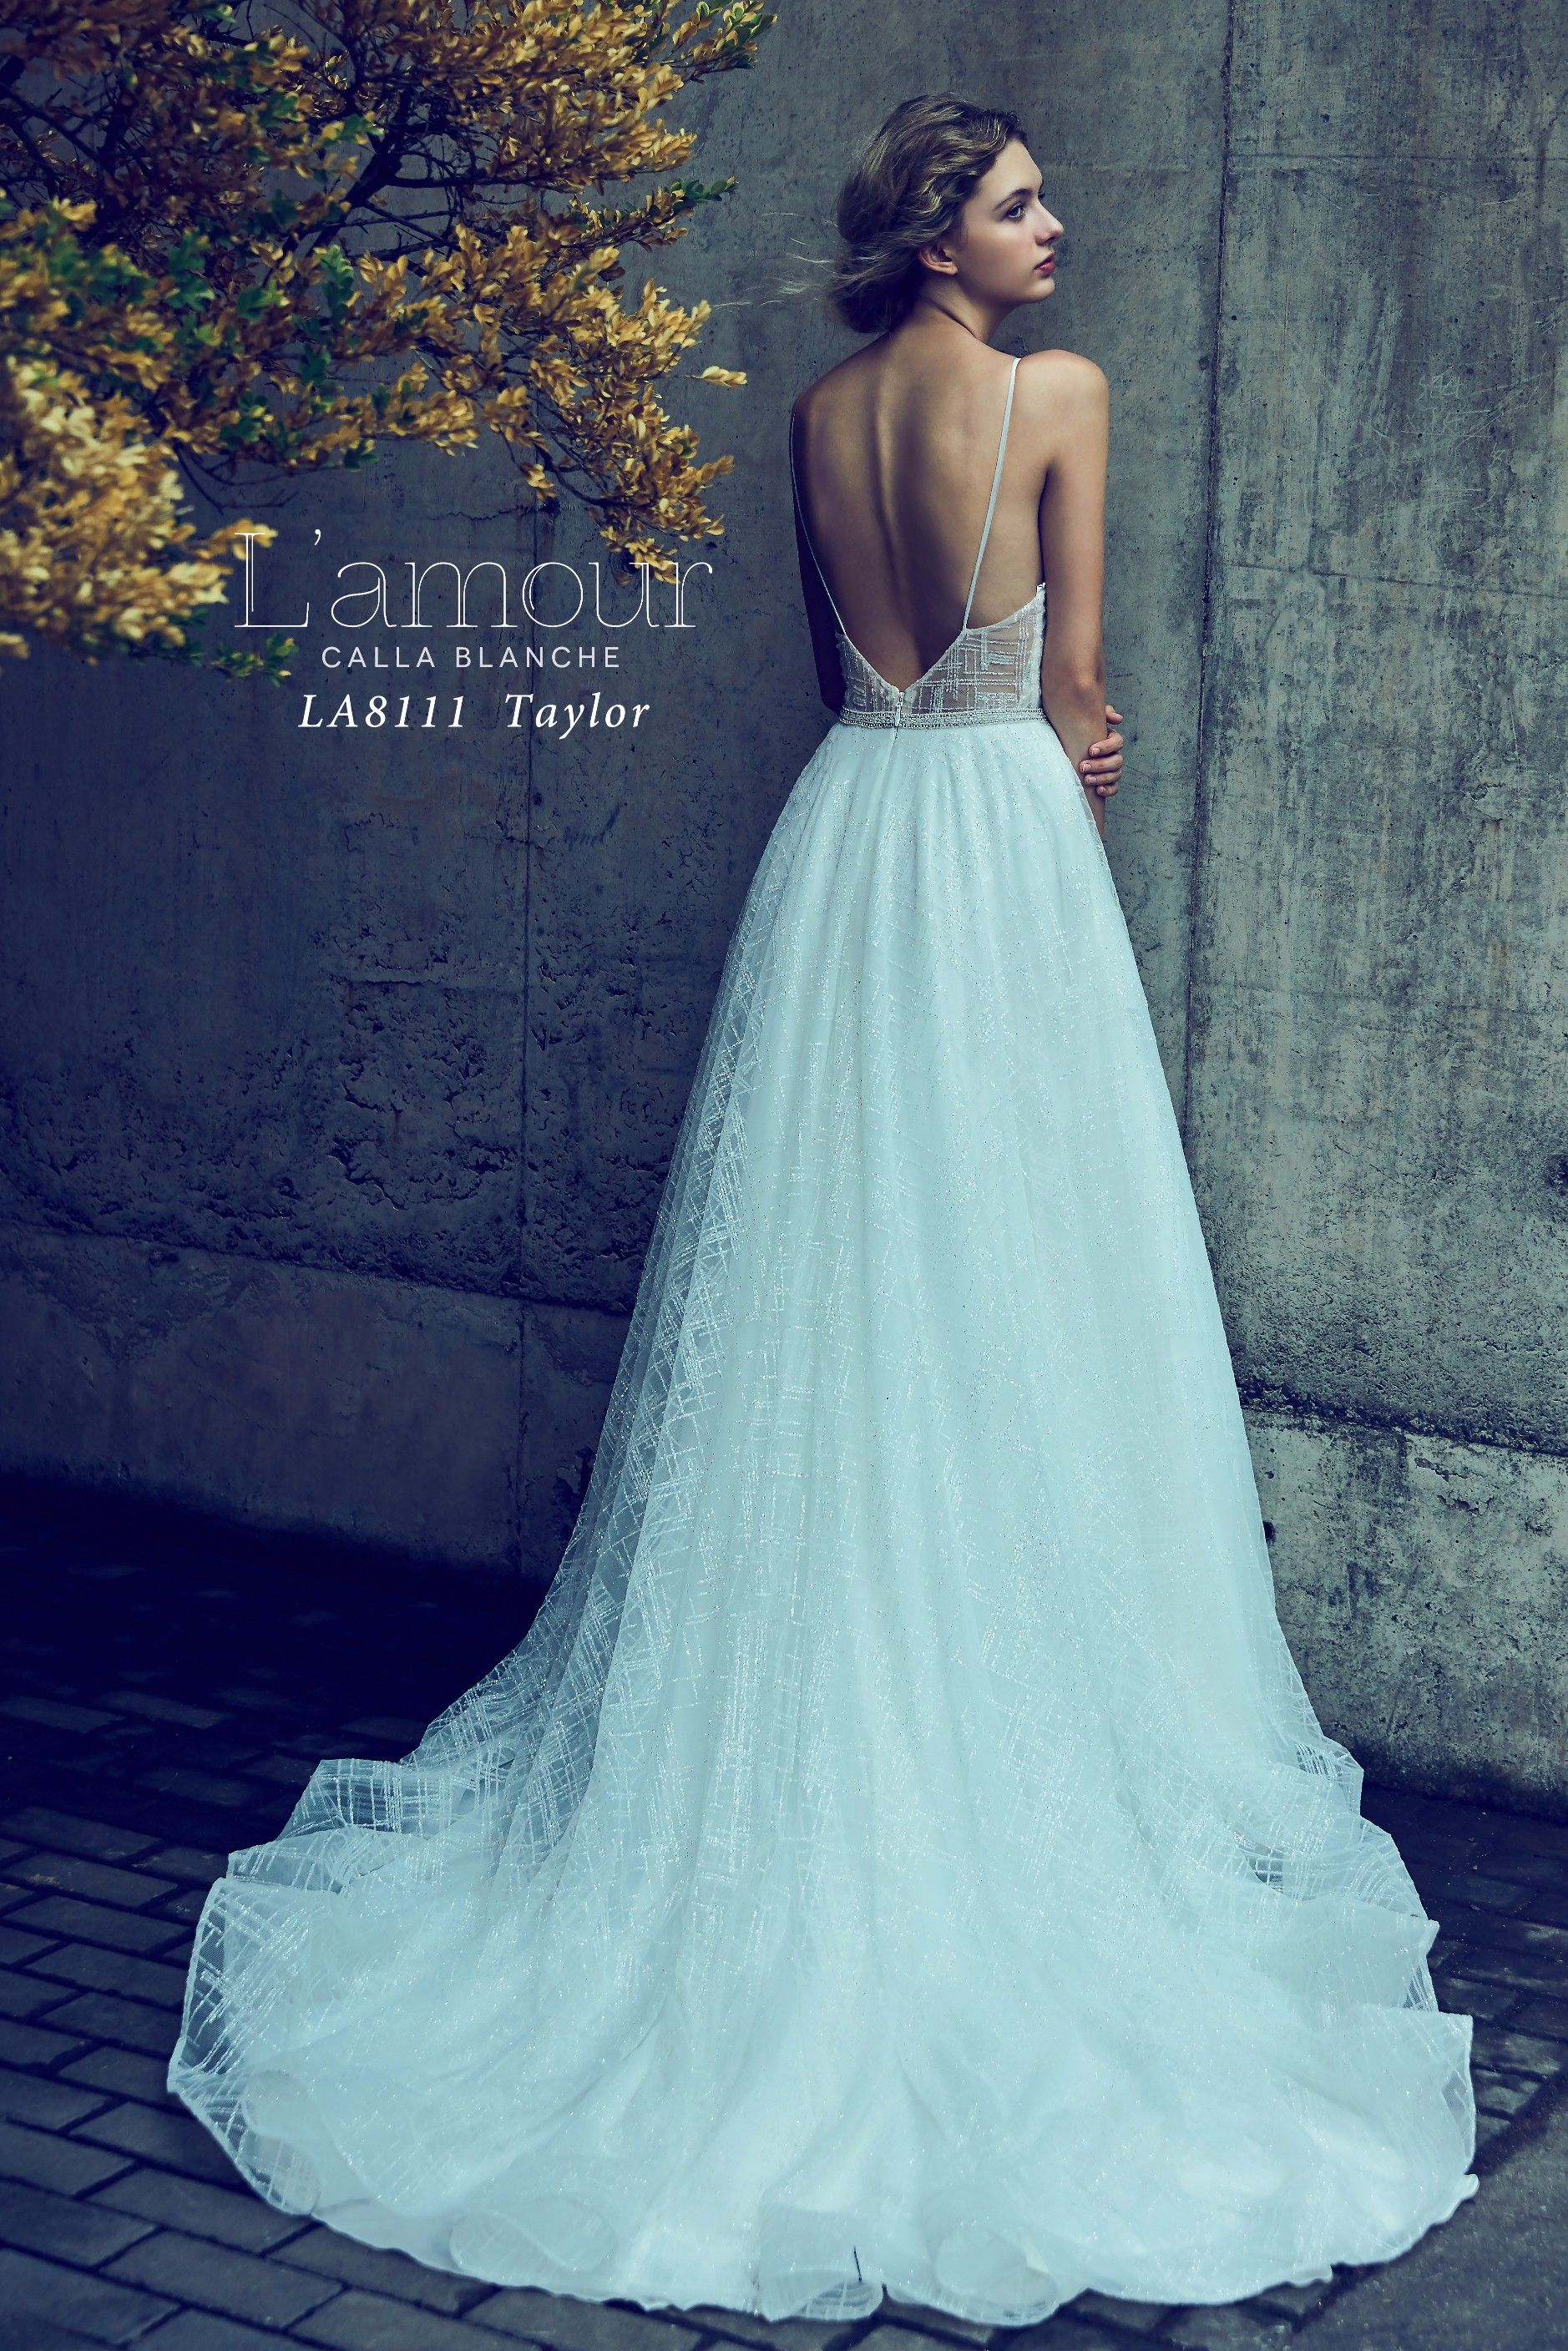 LA8111 Taylor Plunging neckline with low back and spaghetti straps ...